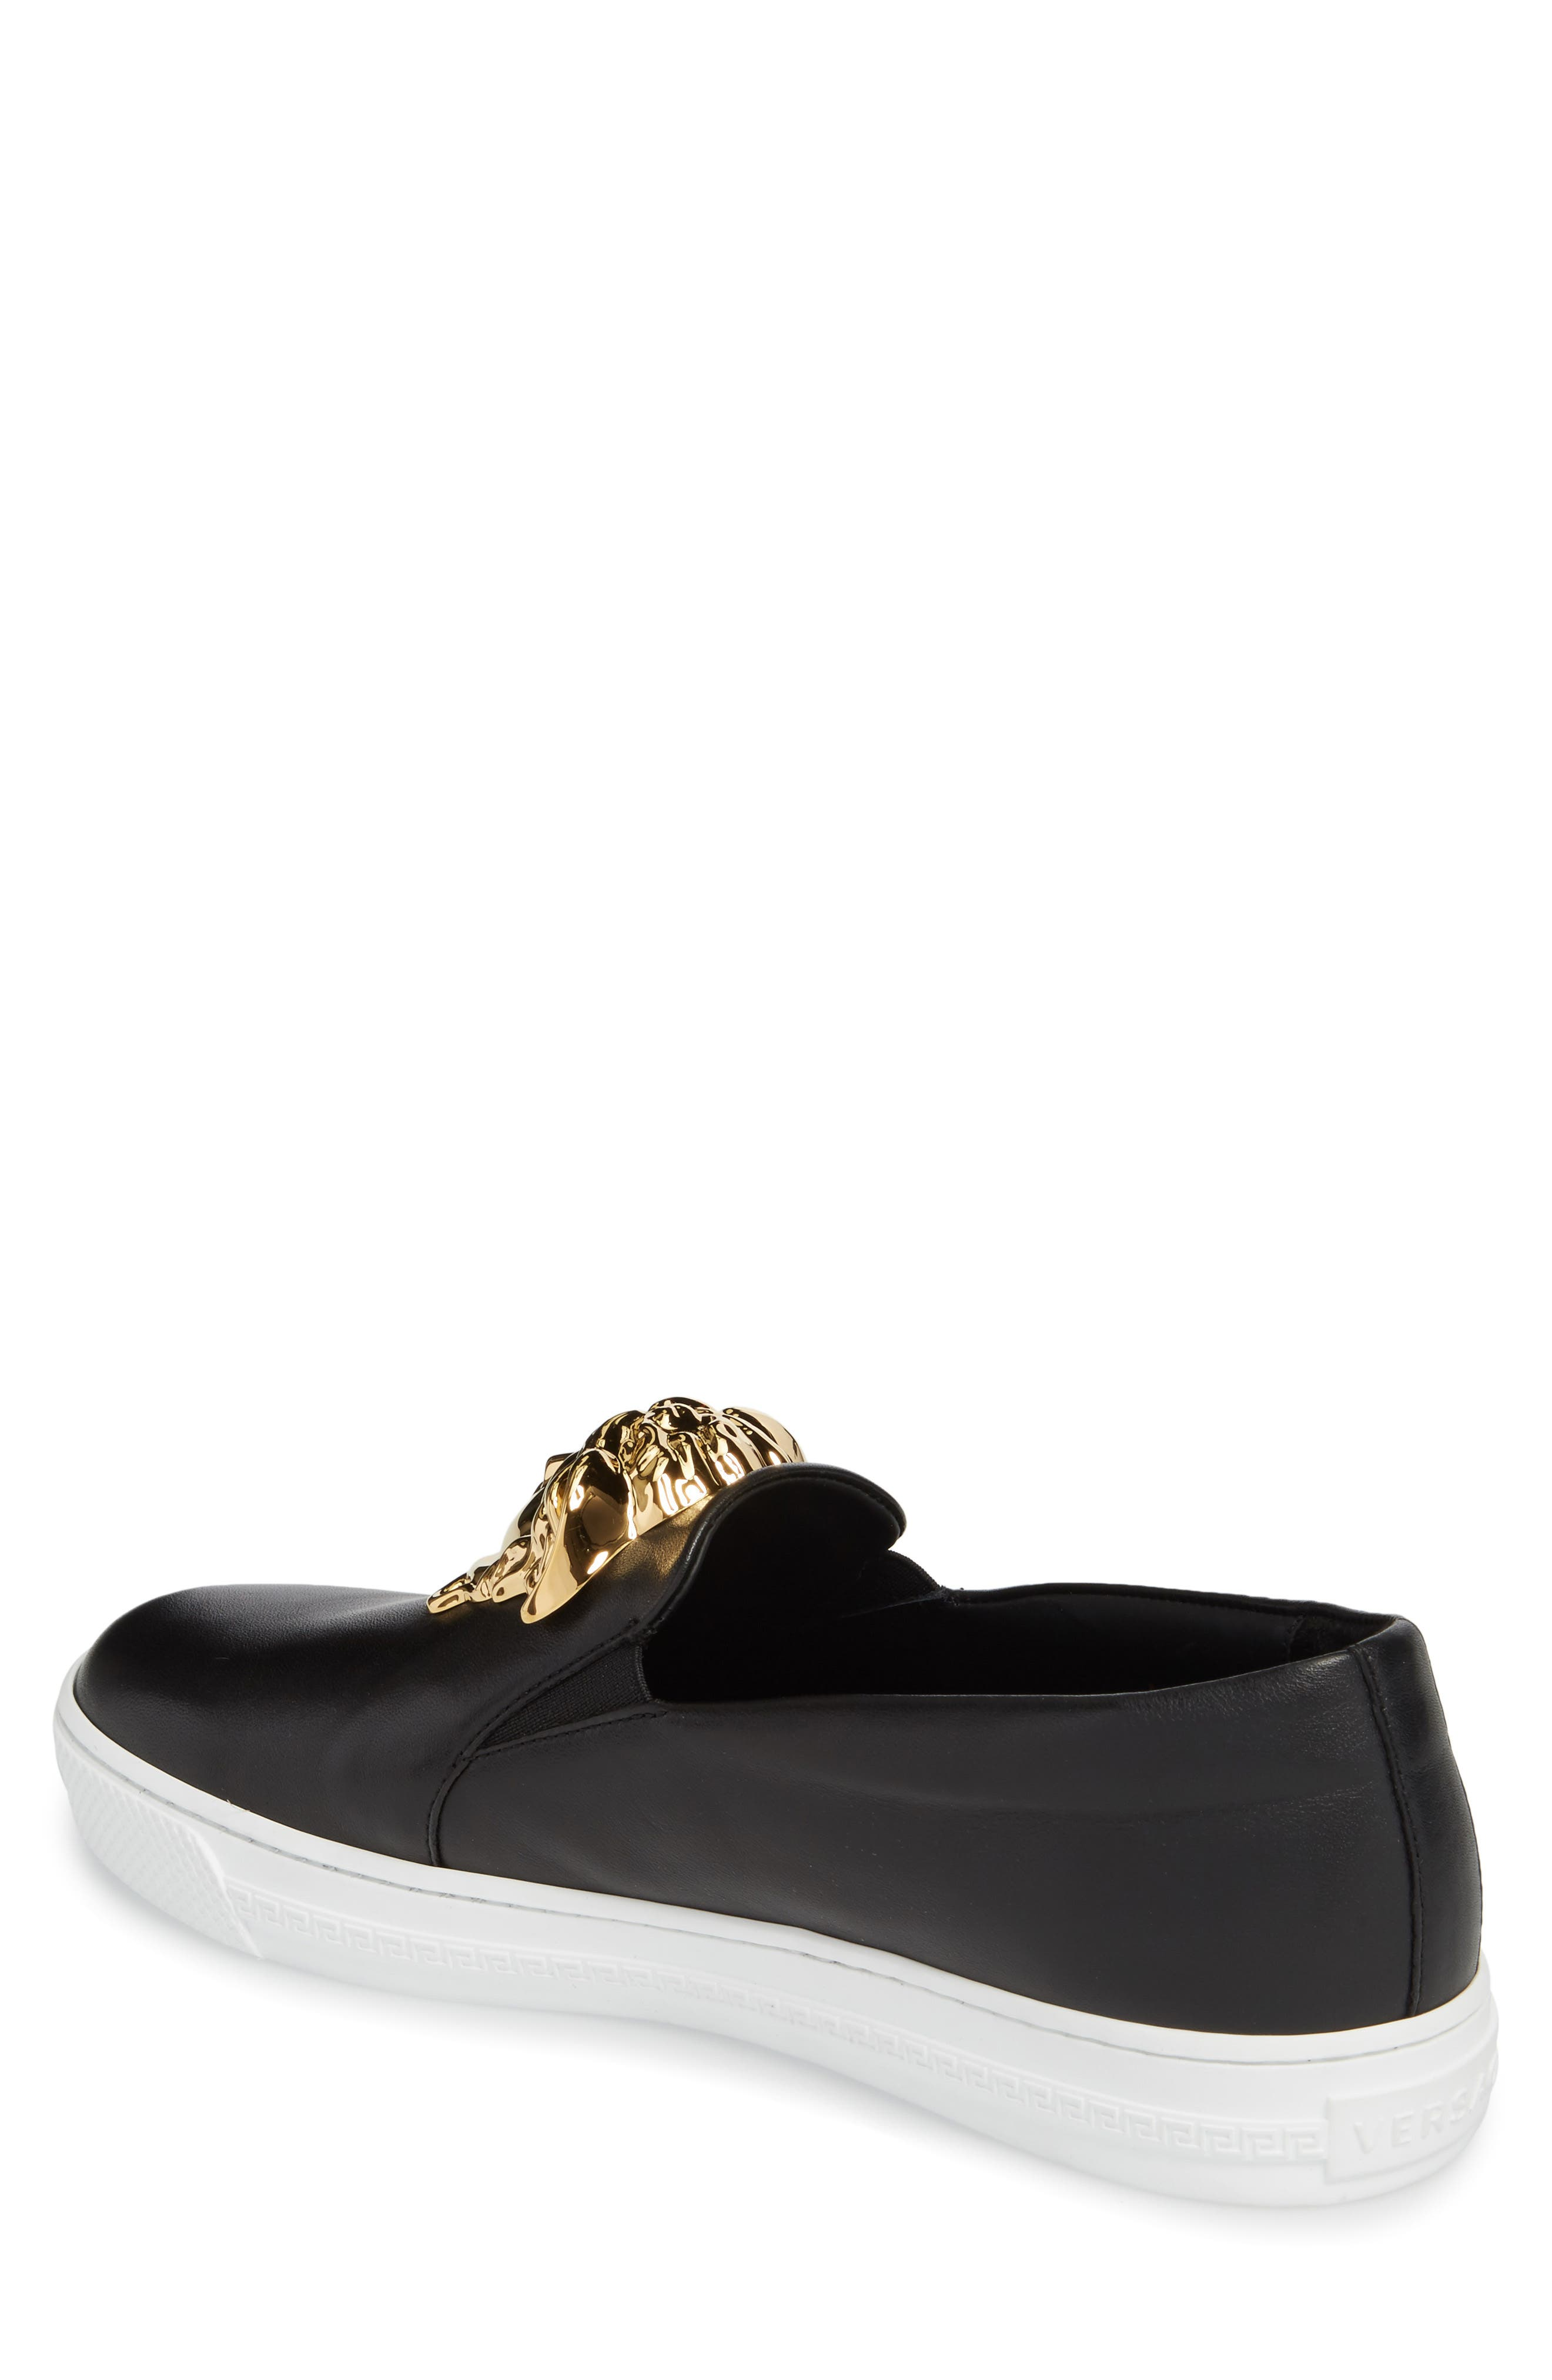 Alternate Image 2  - Versace First Line Iconic Palazzo Slip-On (Men)